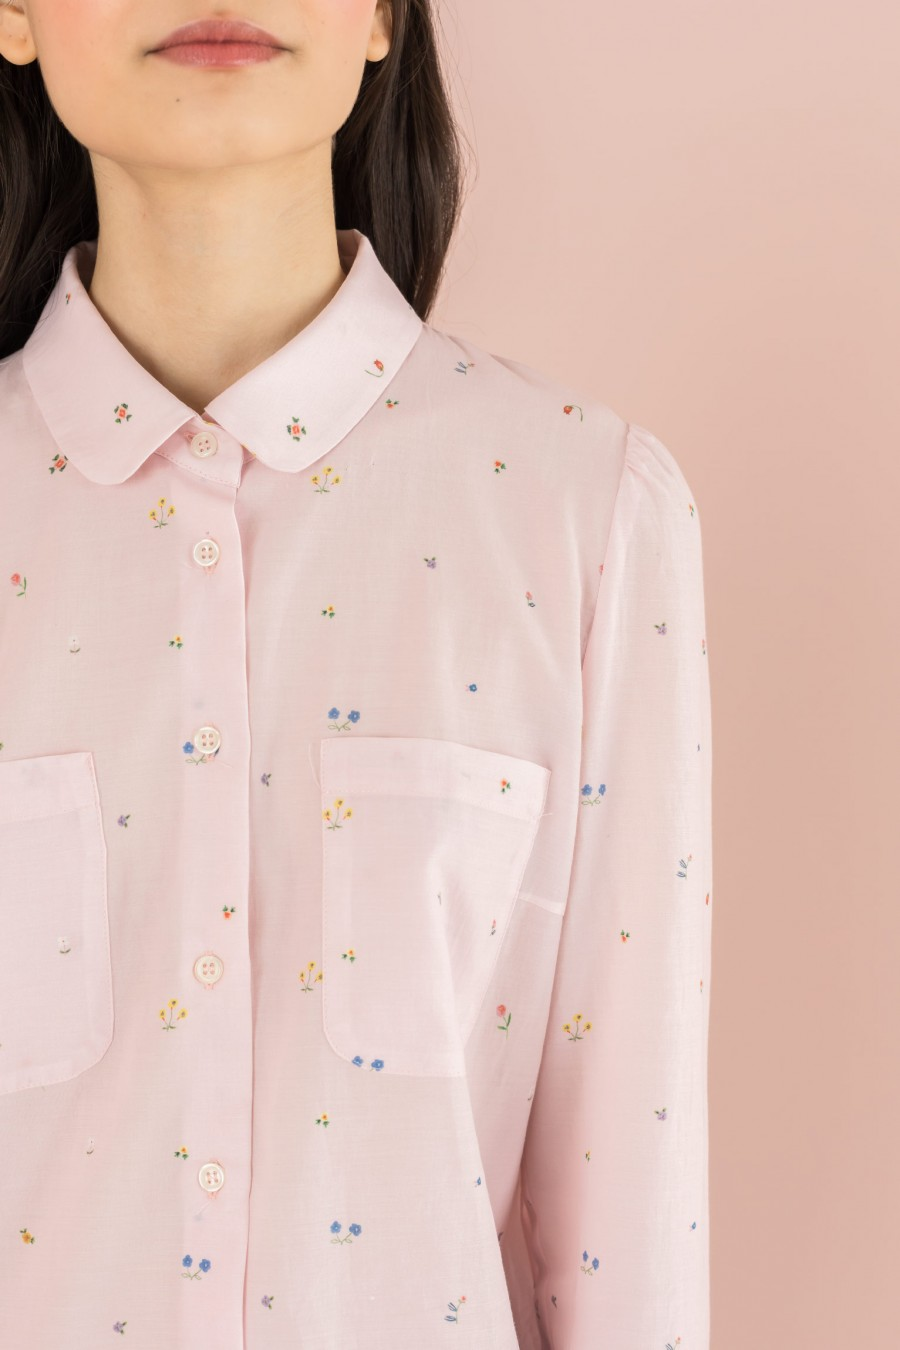 shirt with little flowers